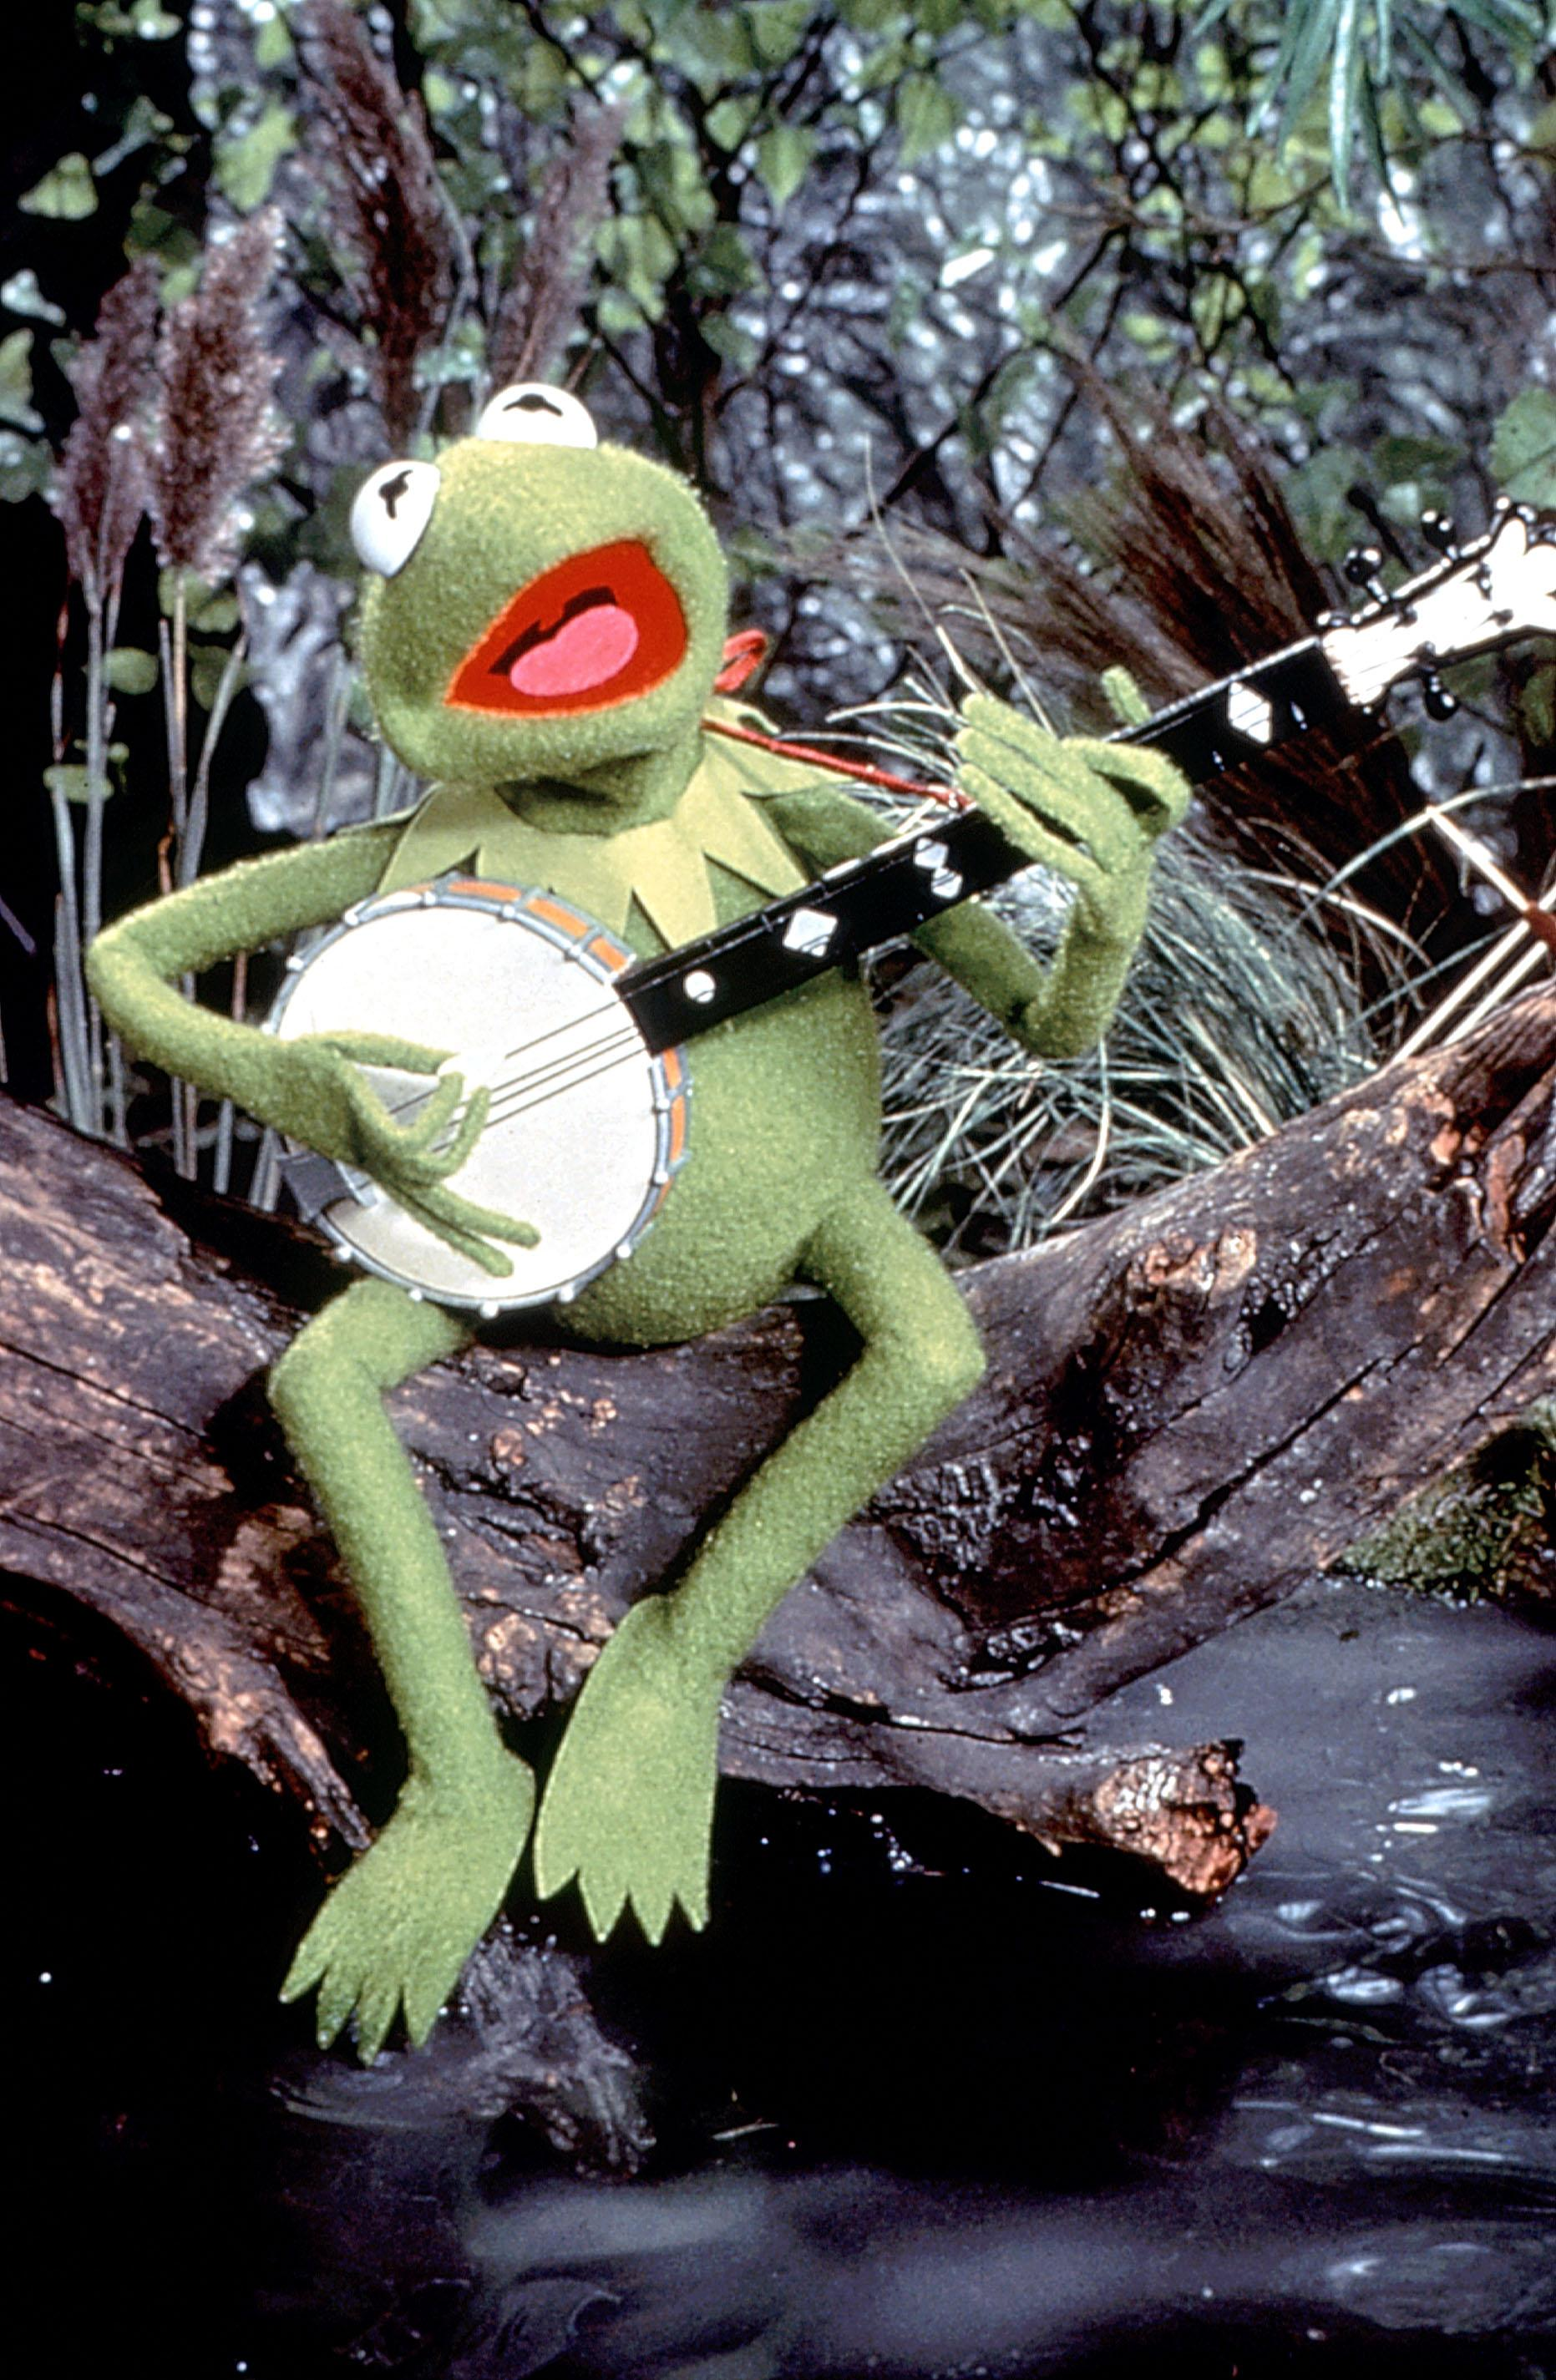 """Kermit sings """"The Rainbow Connection"""" in 'The Muppet Movie' (1979) (Henson Associates courtesy of Everett Collection)"""